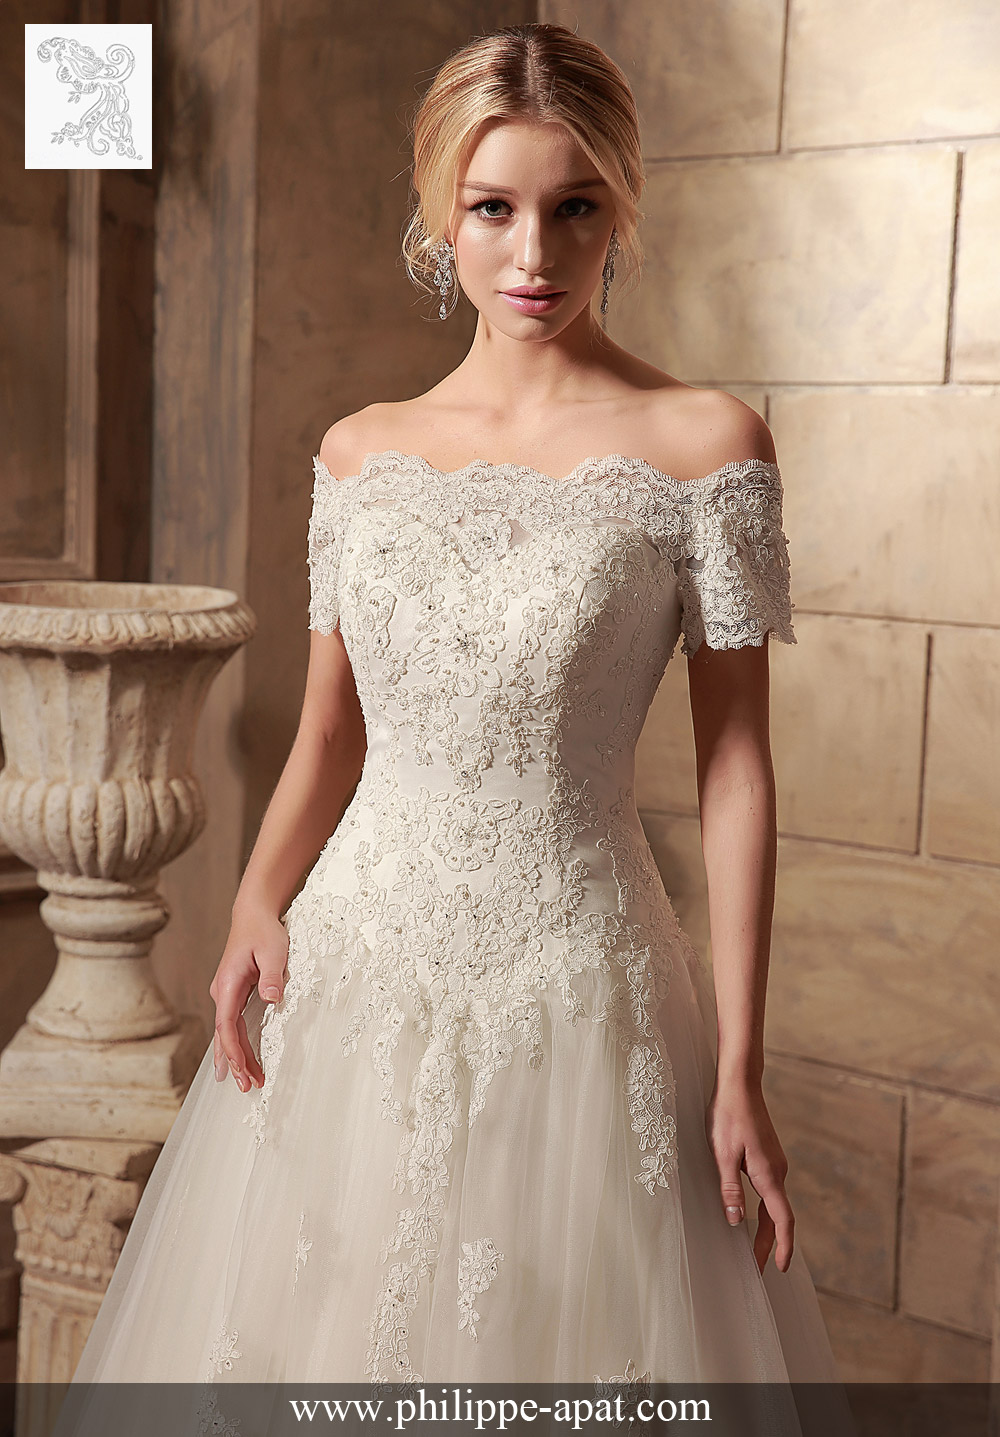 XL Wedding Dress 2021